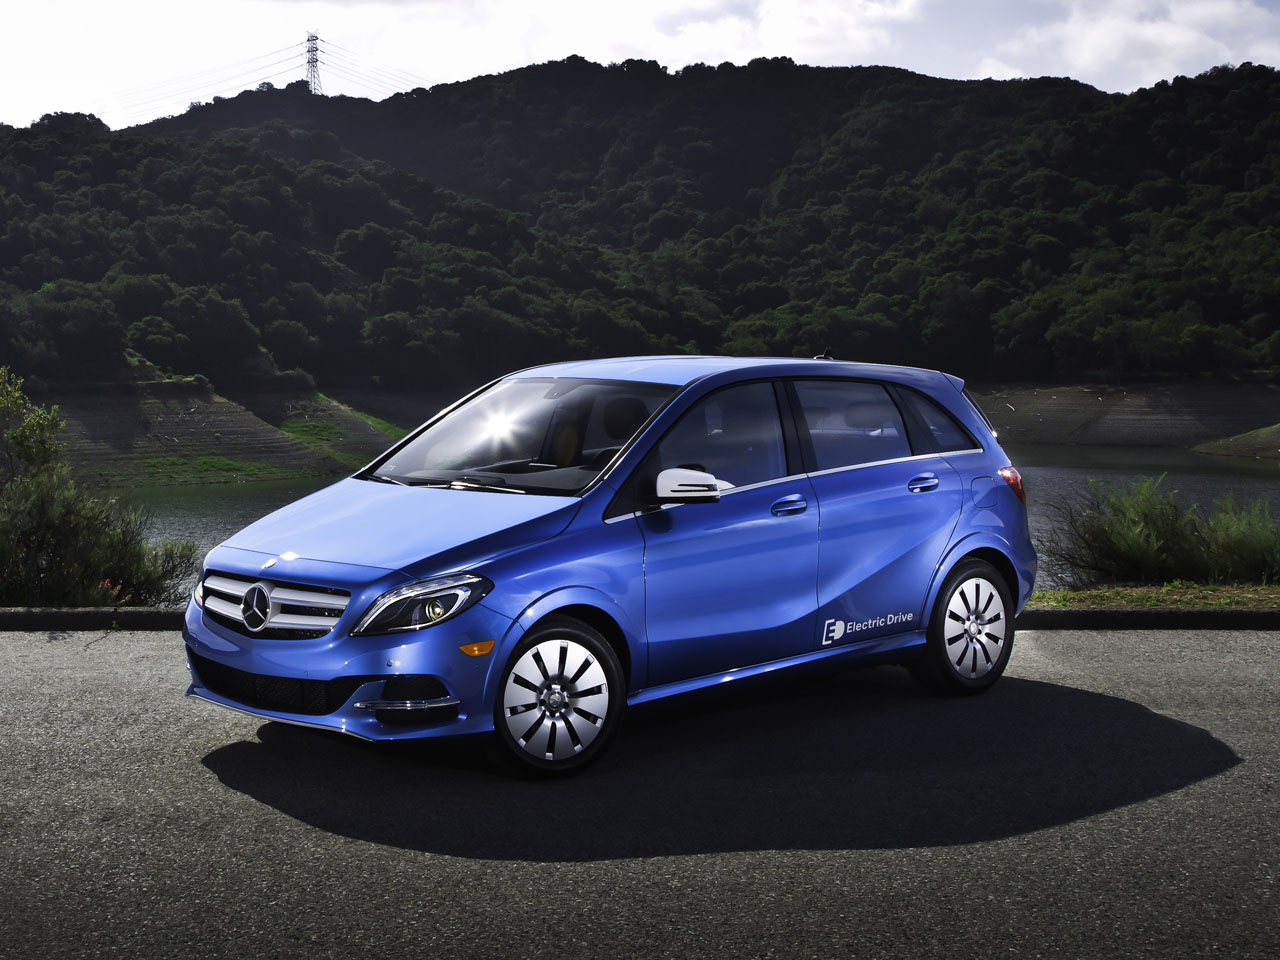 2014 Mercedes Benz B Class Electric Drive Road Test Review